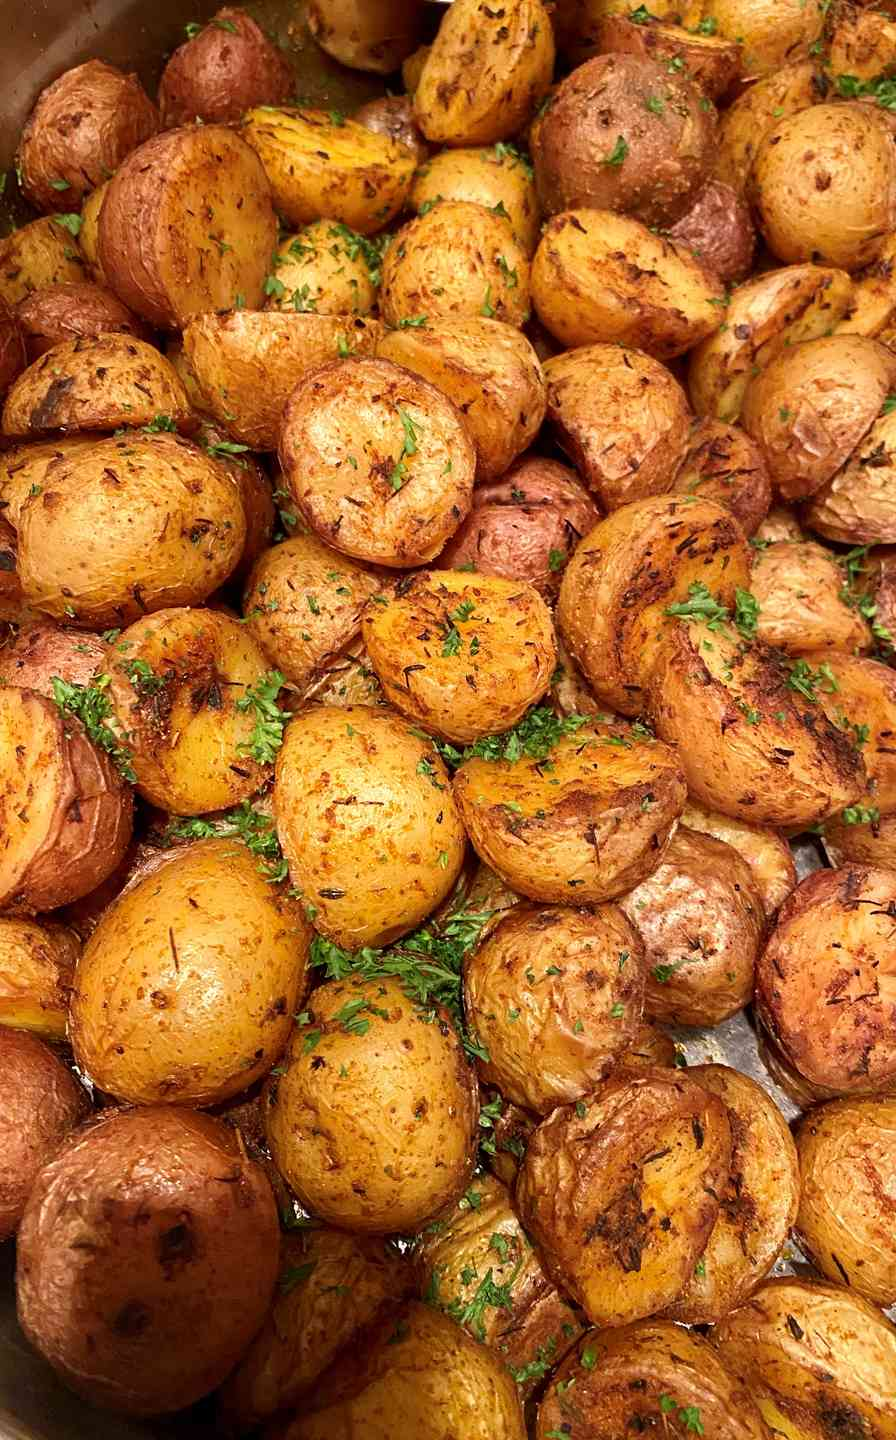 Roasted Red Herb Potatoes